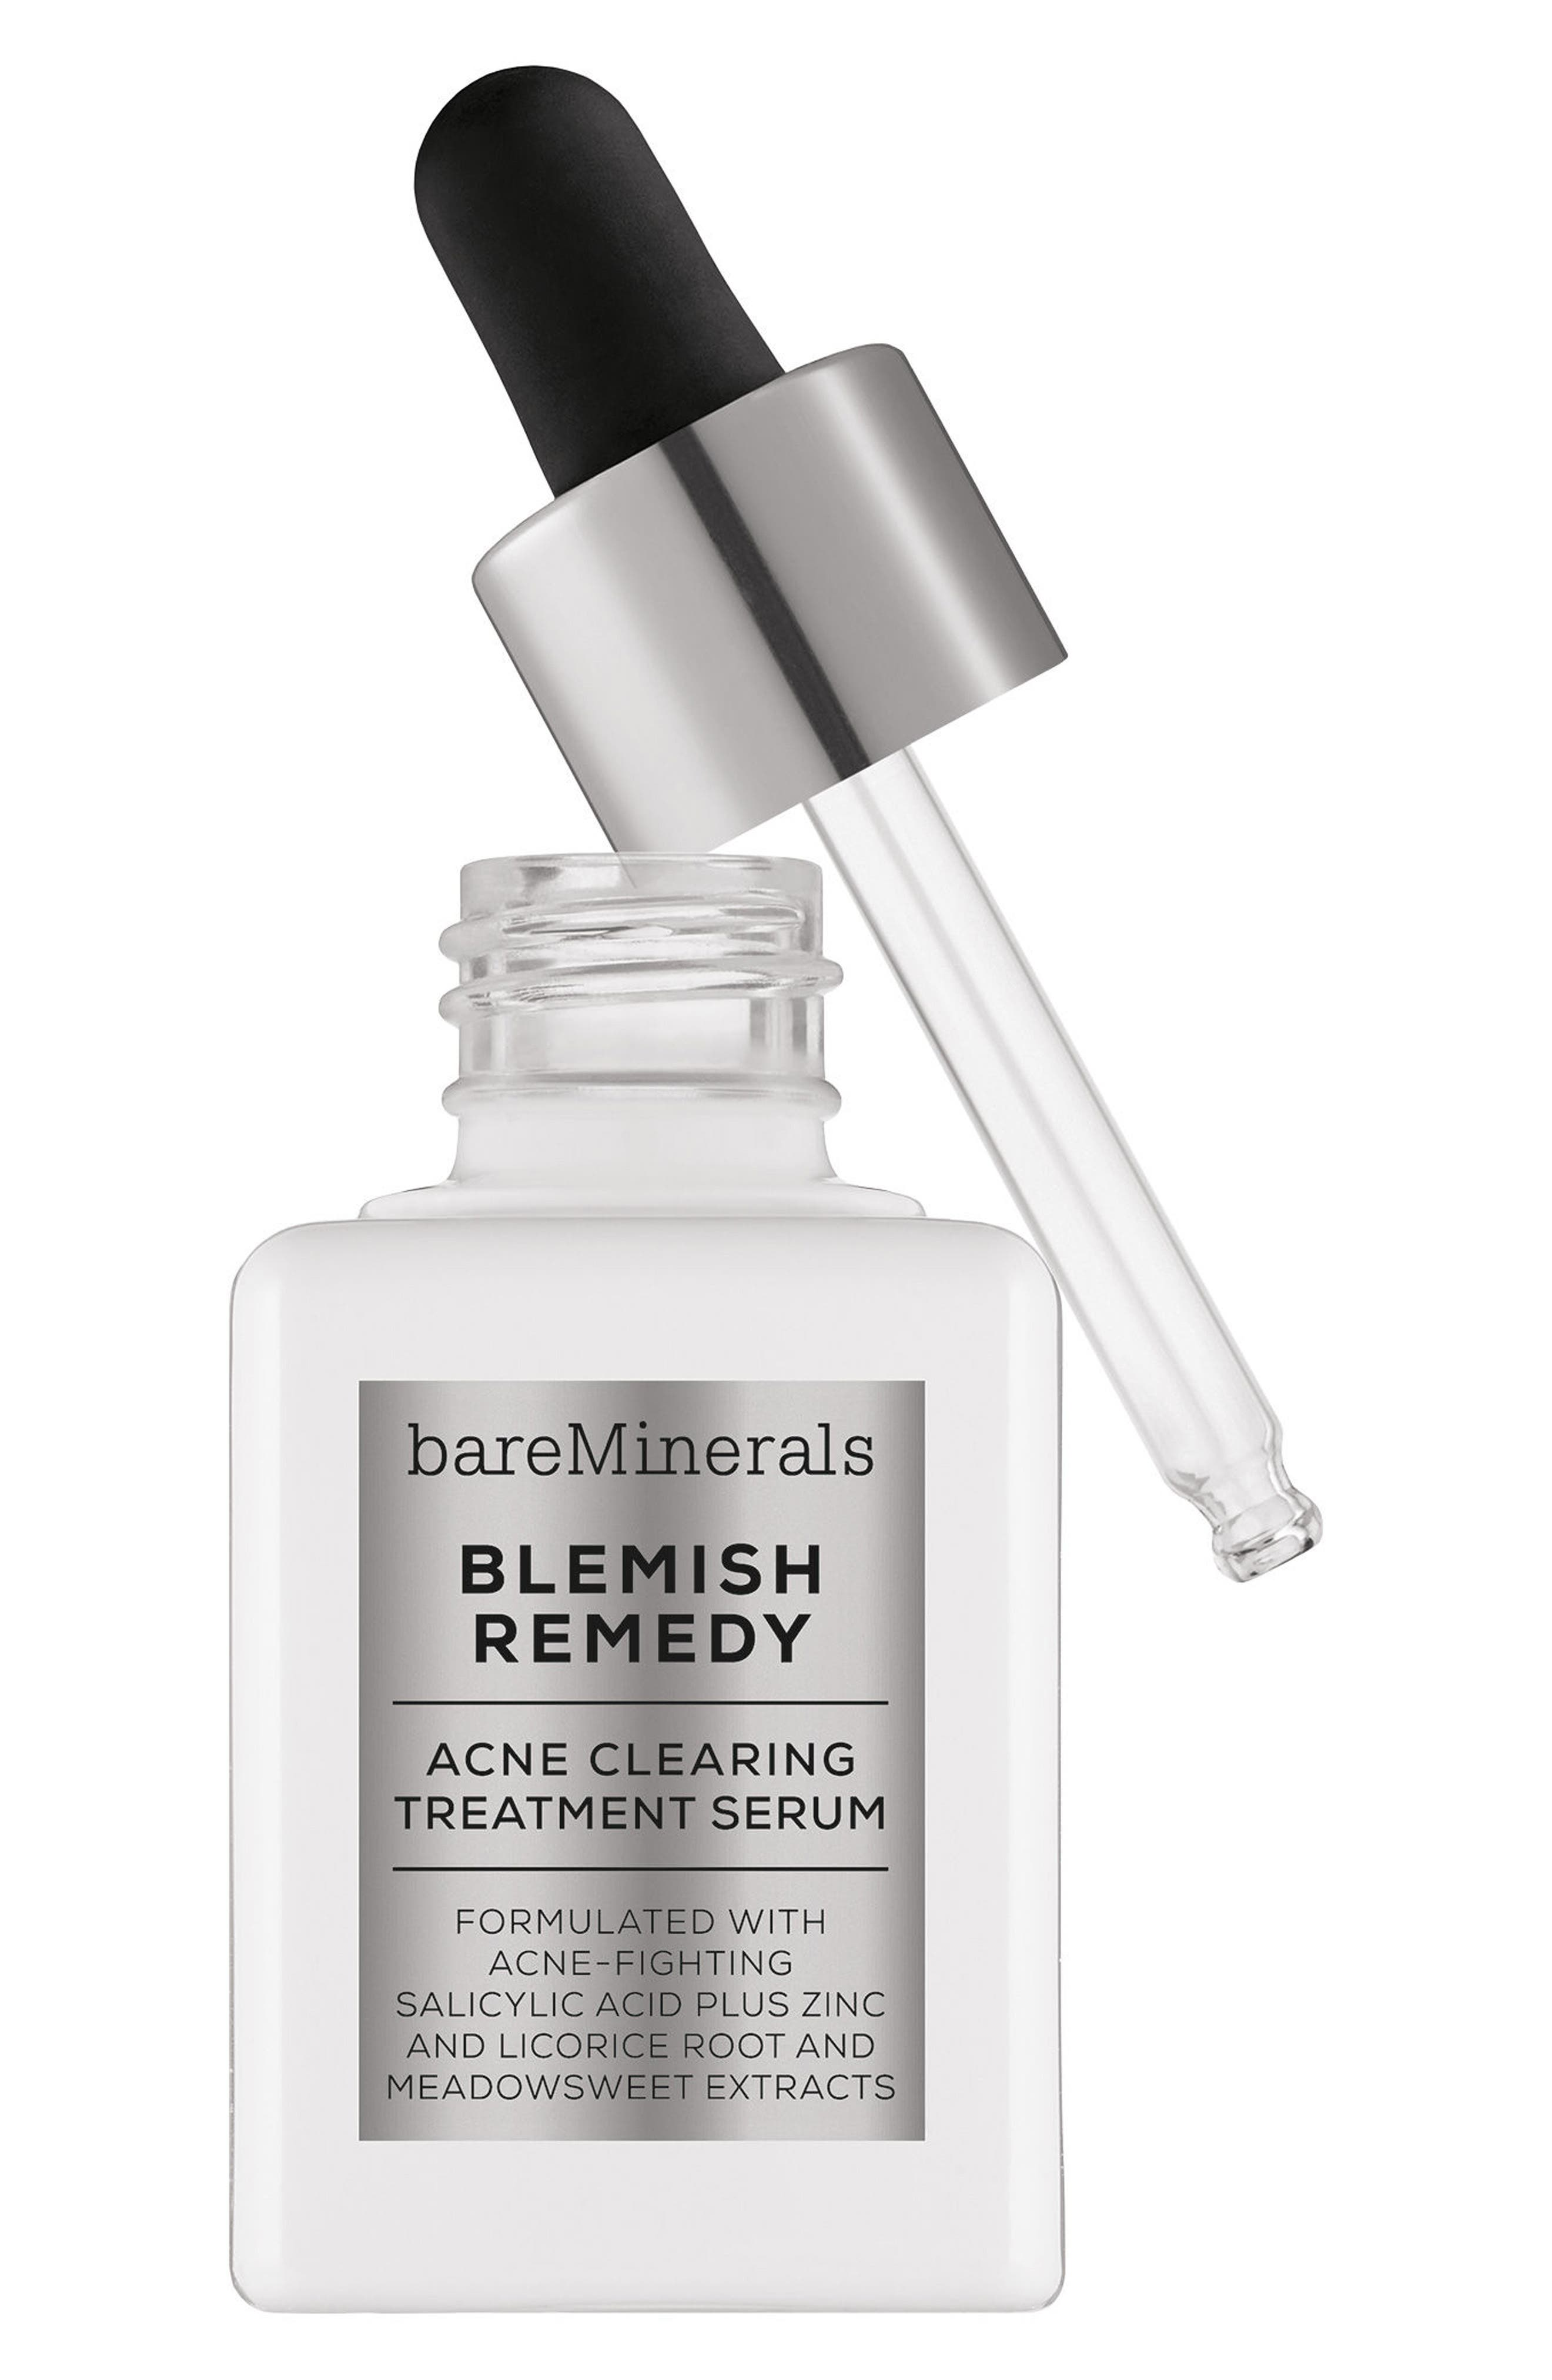 bareMinerals® Blemish Remedy® Acne Clearing Treatment Serum